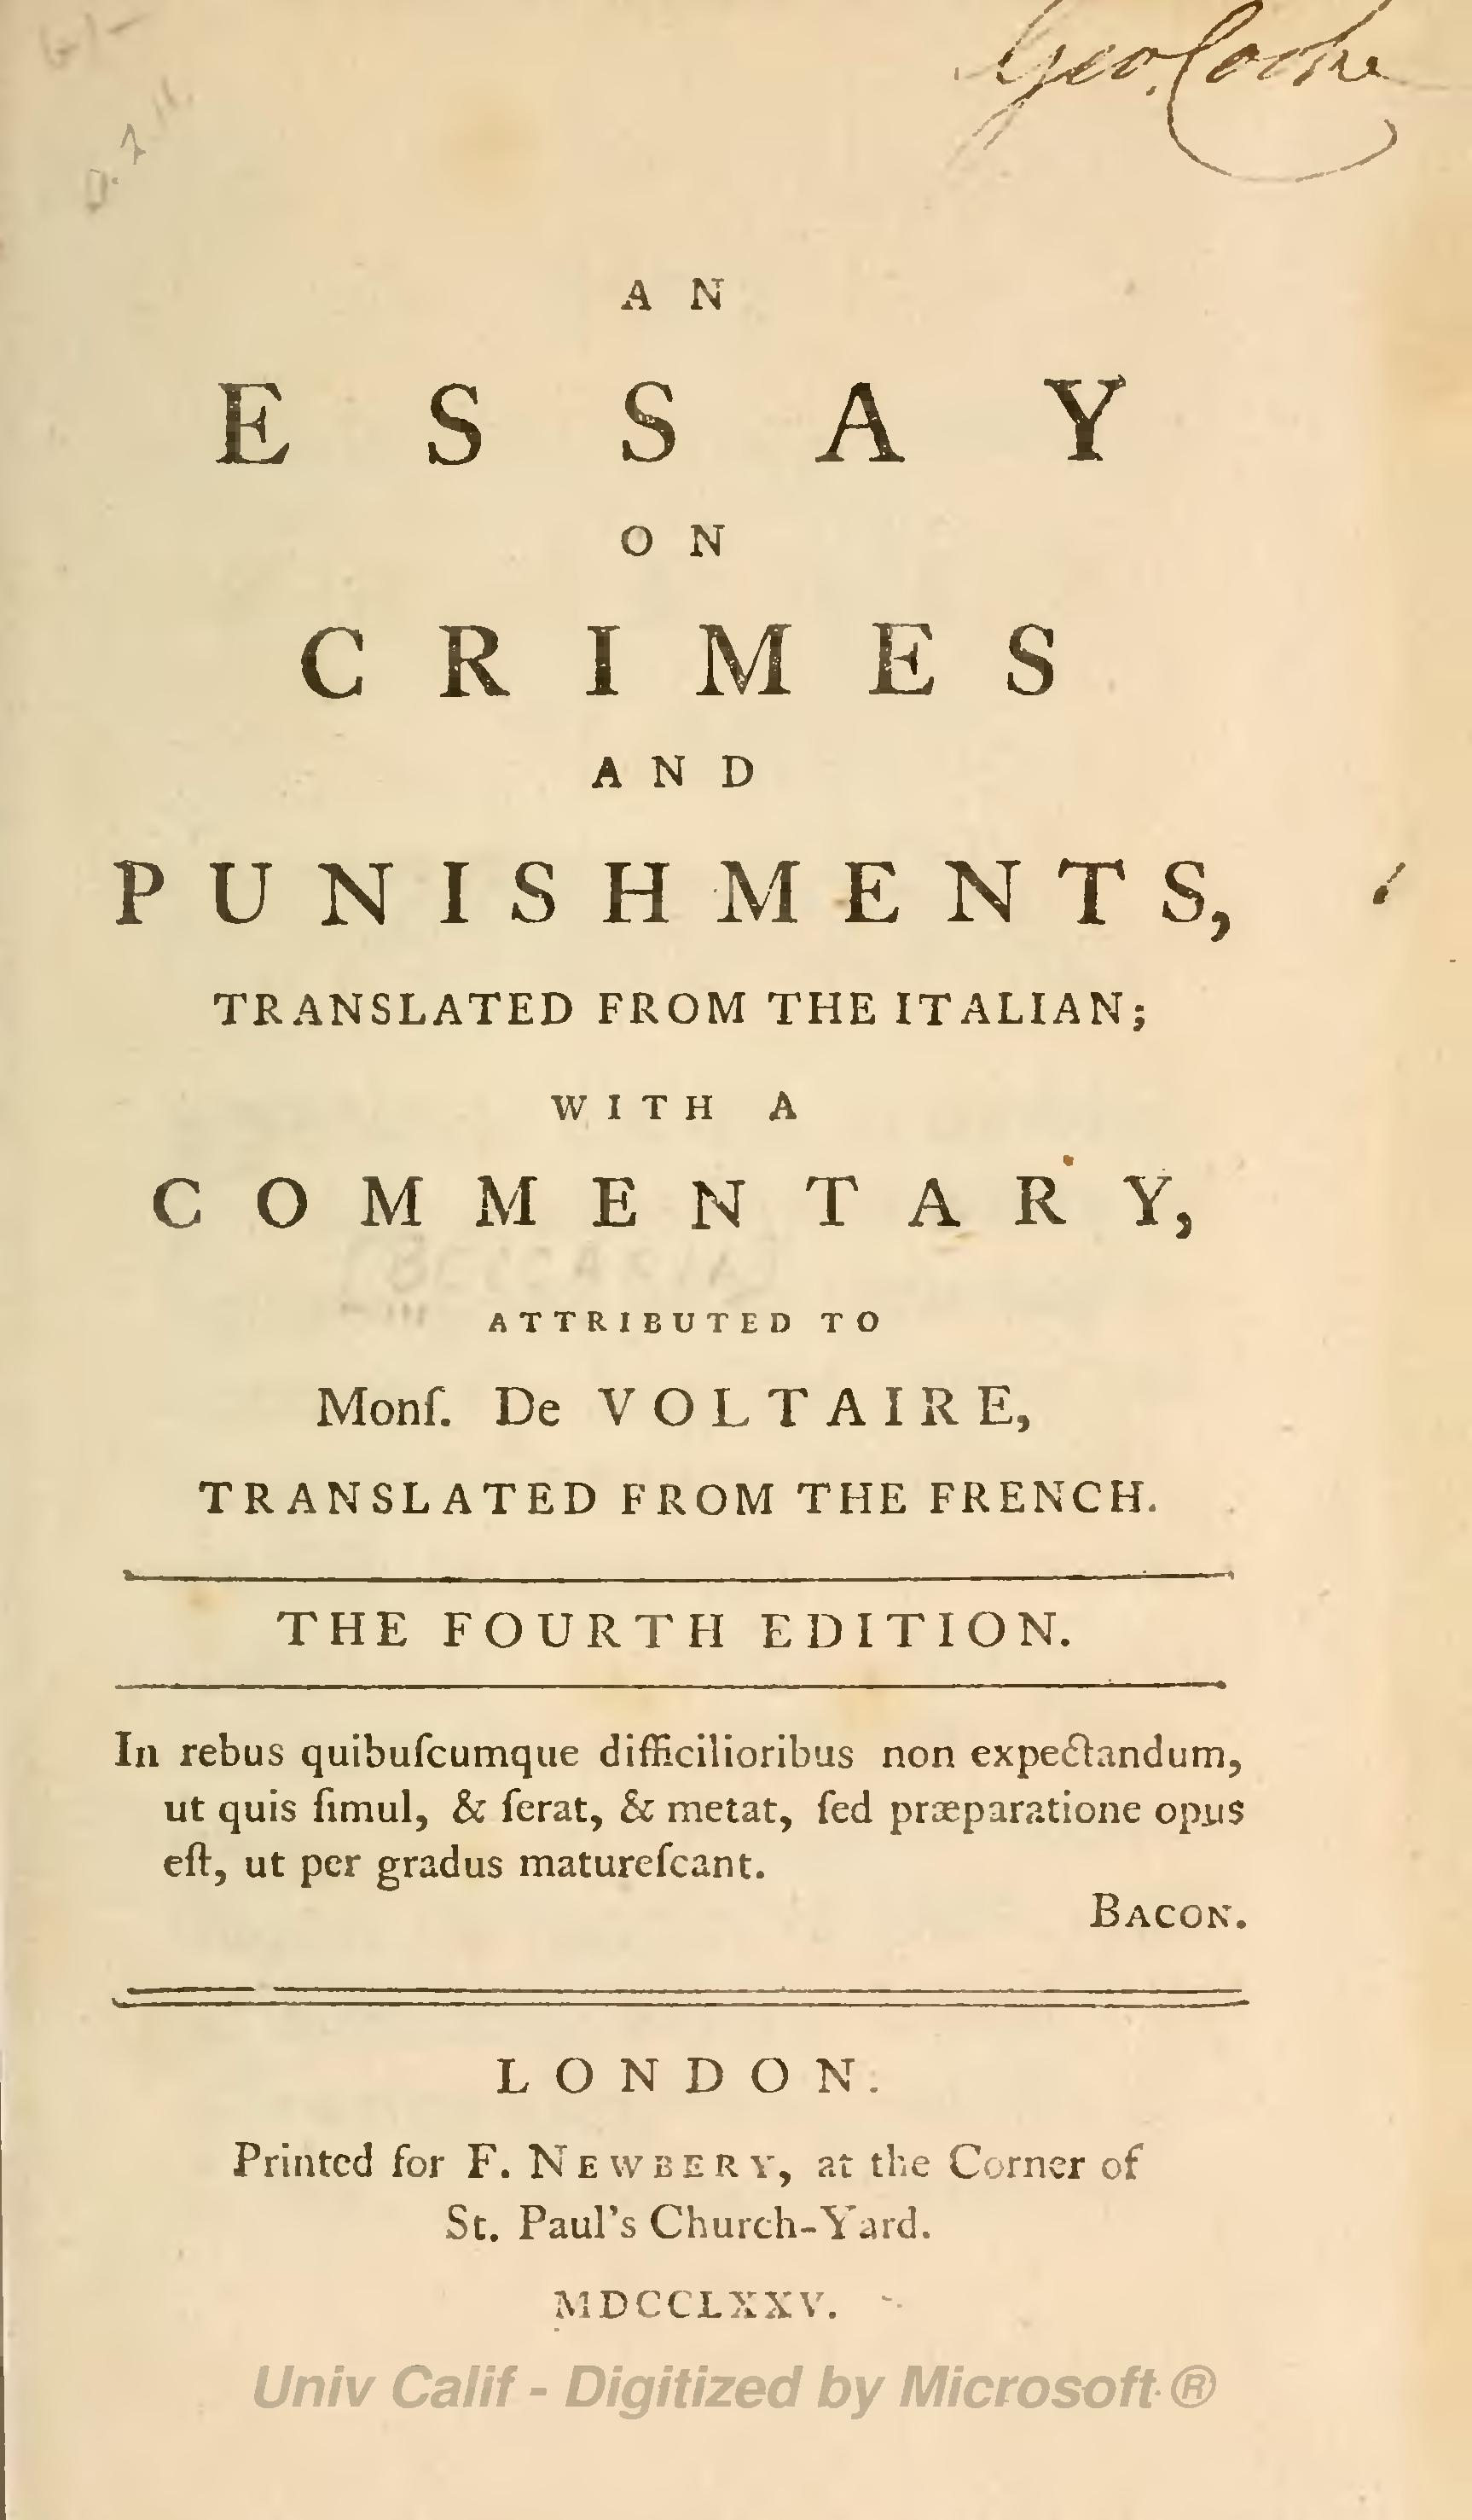 essay about crimes and punishments Cesare beccaria of crimes and punishments (1764) the empirical project of the enlightenment is tied to a larger project of reform of social institutions if men can use their individual reason to analyze the structures that they are born into, the hope is that they can then rationally organize those structures.